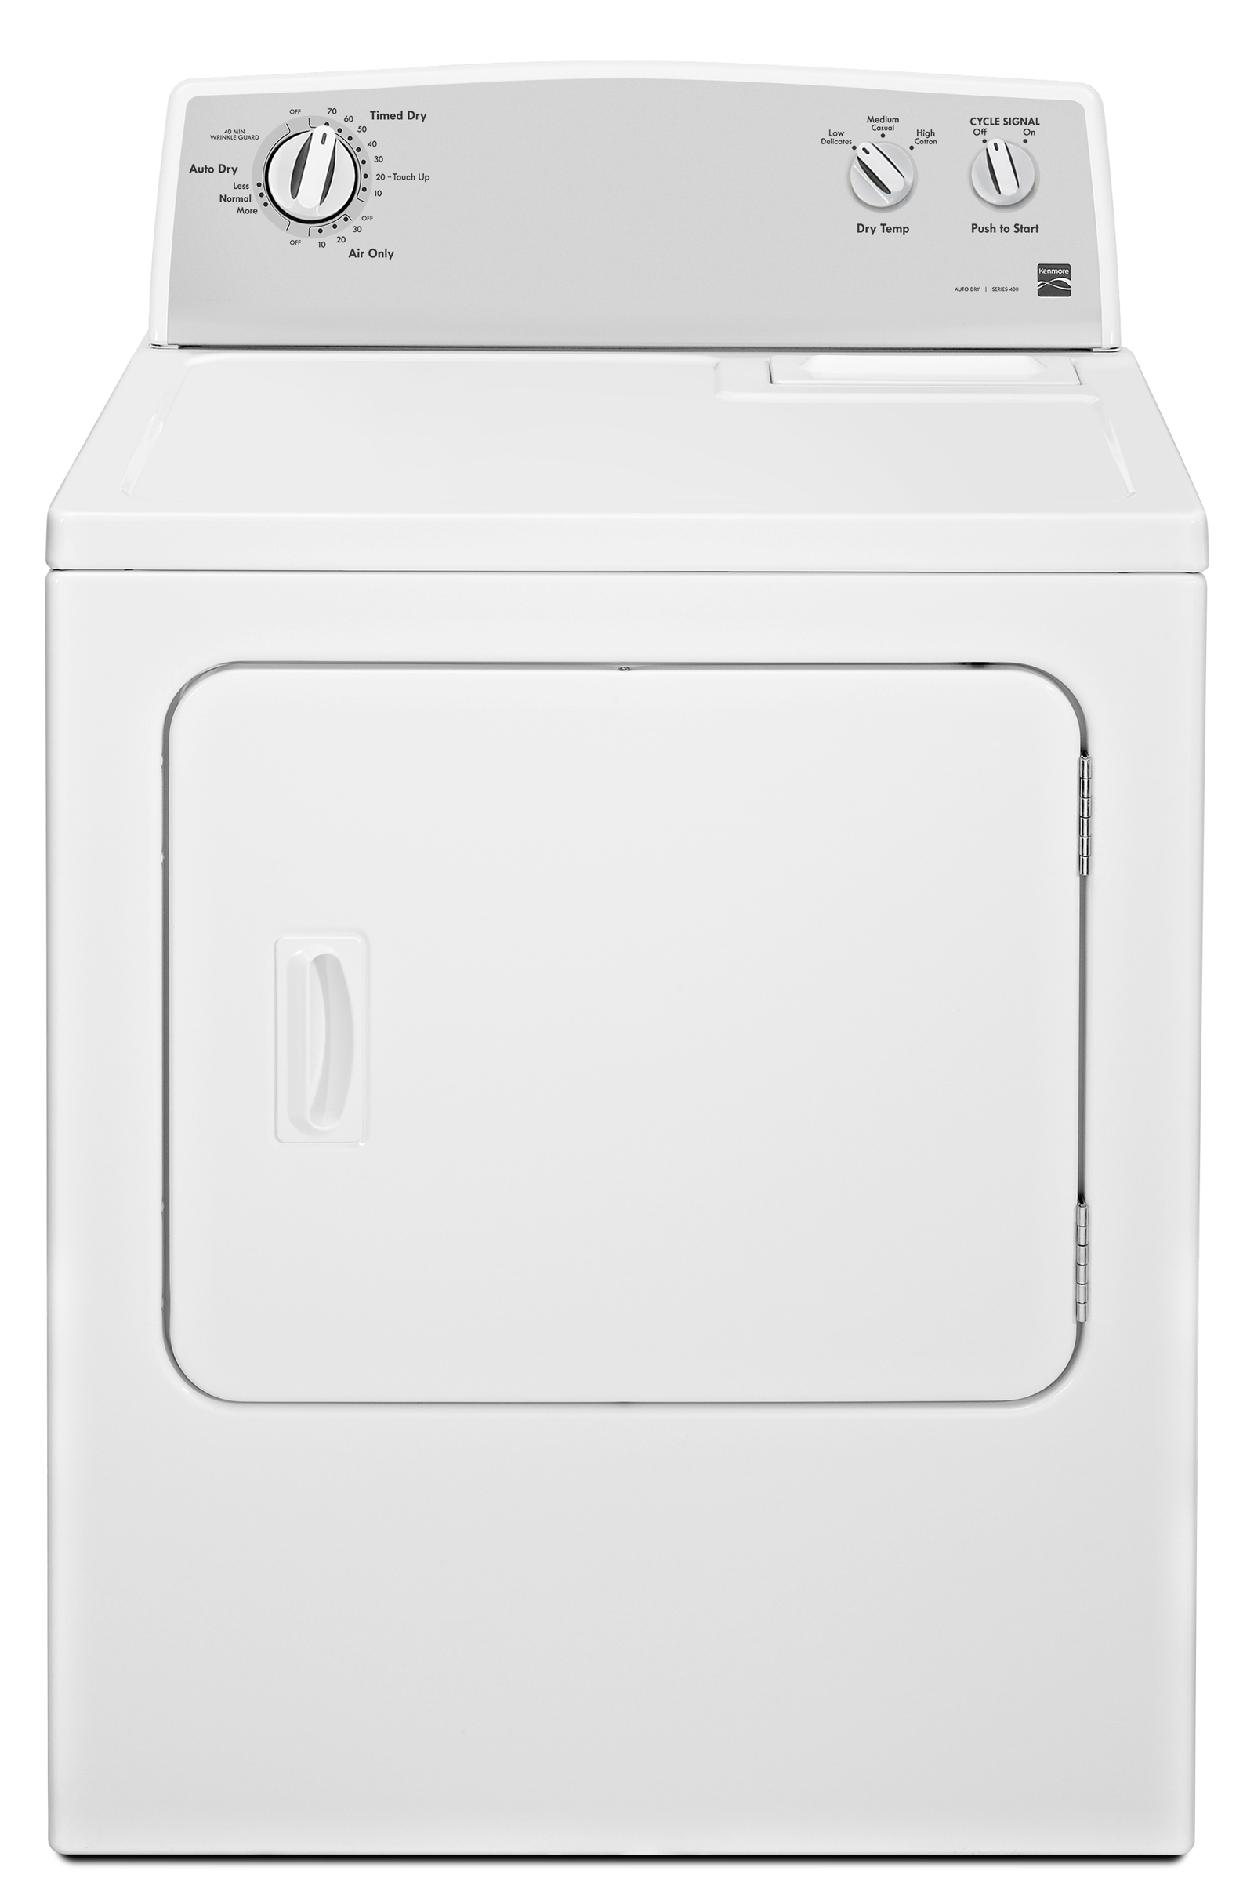 7.0 cu. ft. Electric Dryer w/ Auto Dry -